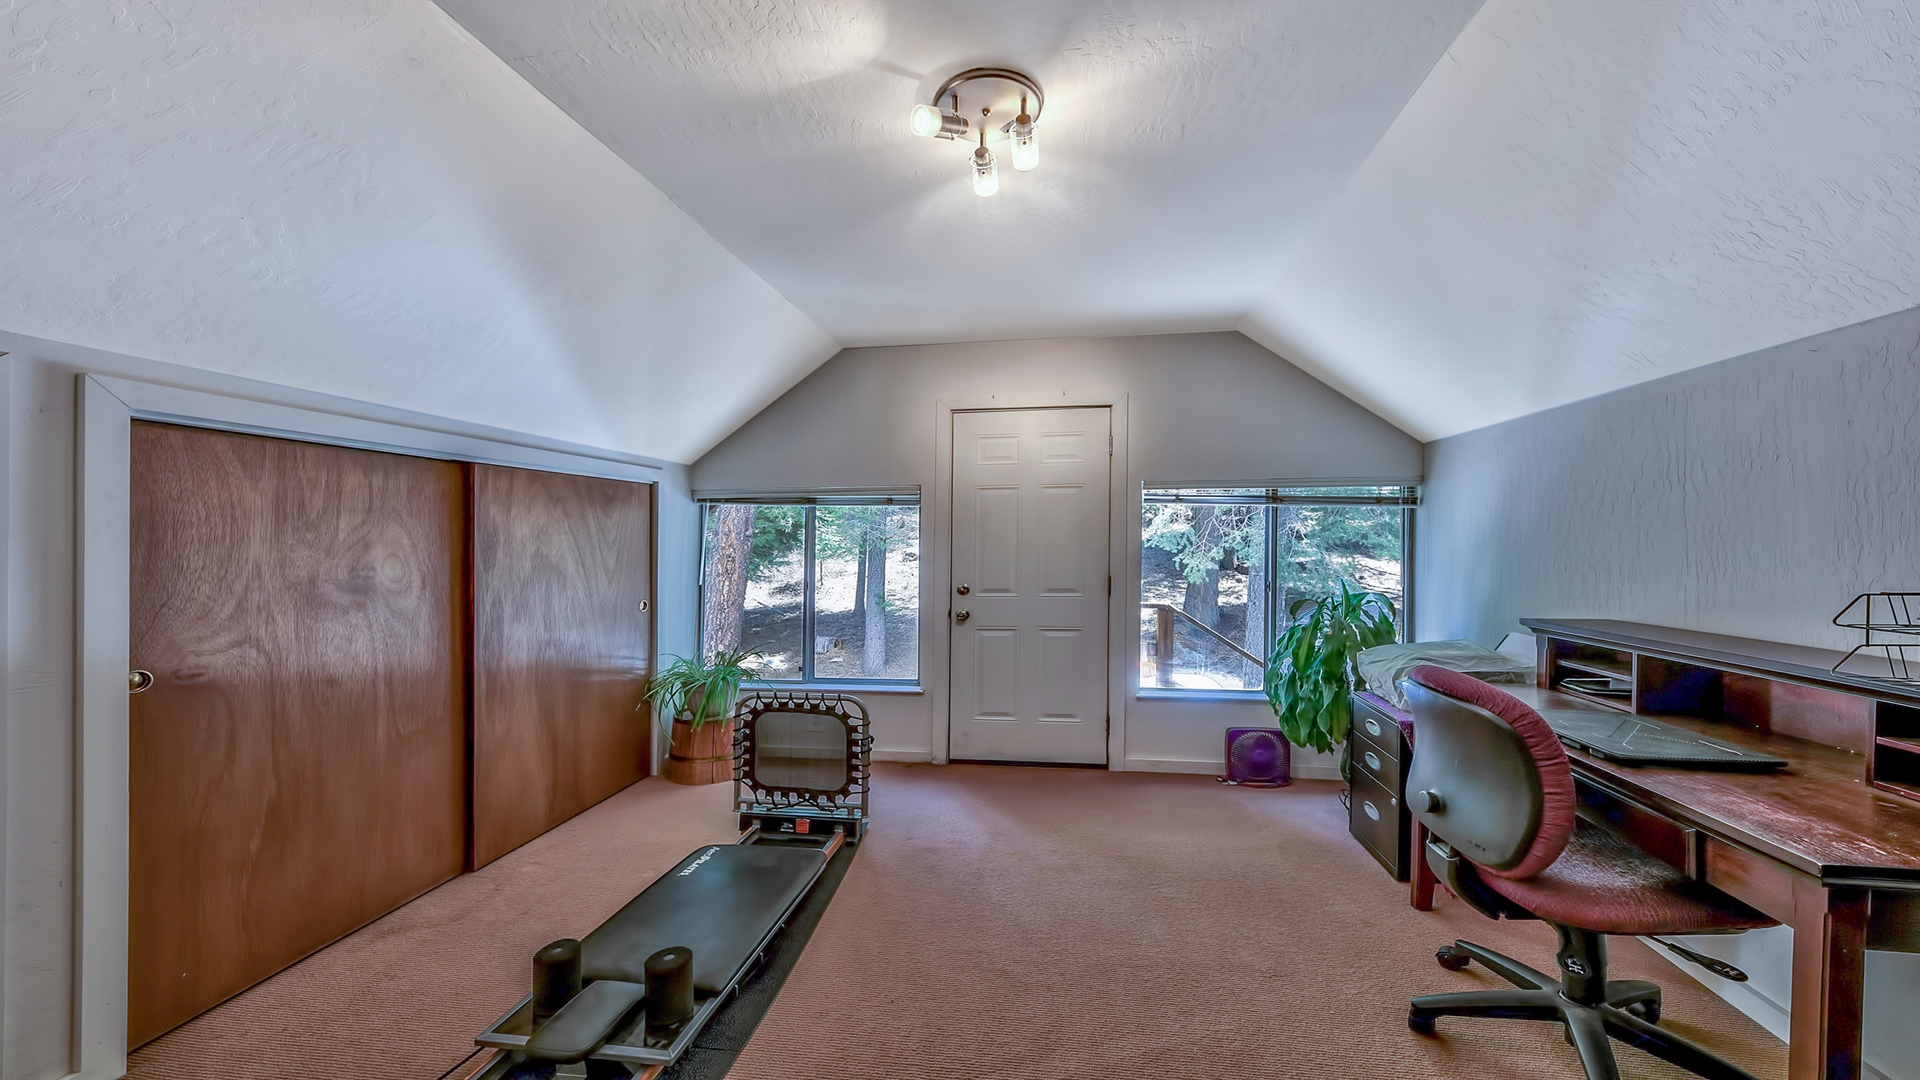 Additional photo for property listing at 7870 River Road Truckee, CA 96161 7870 River Road Truckee, California 96161 United States